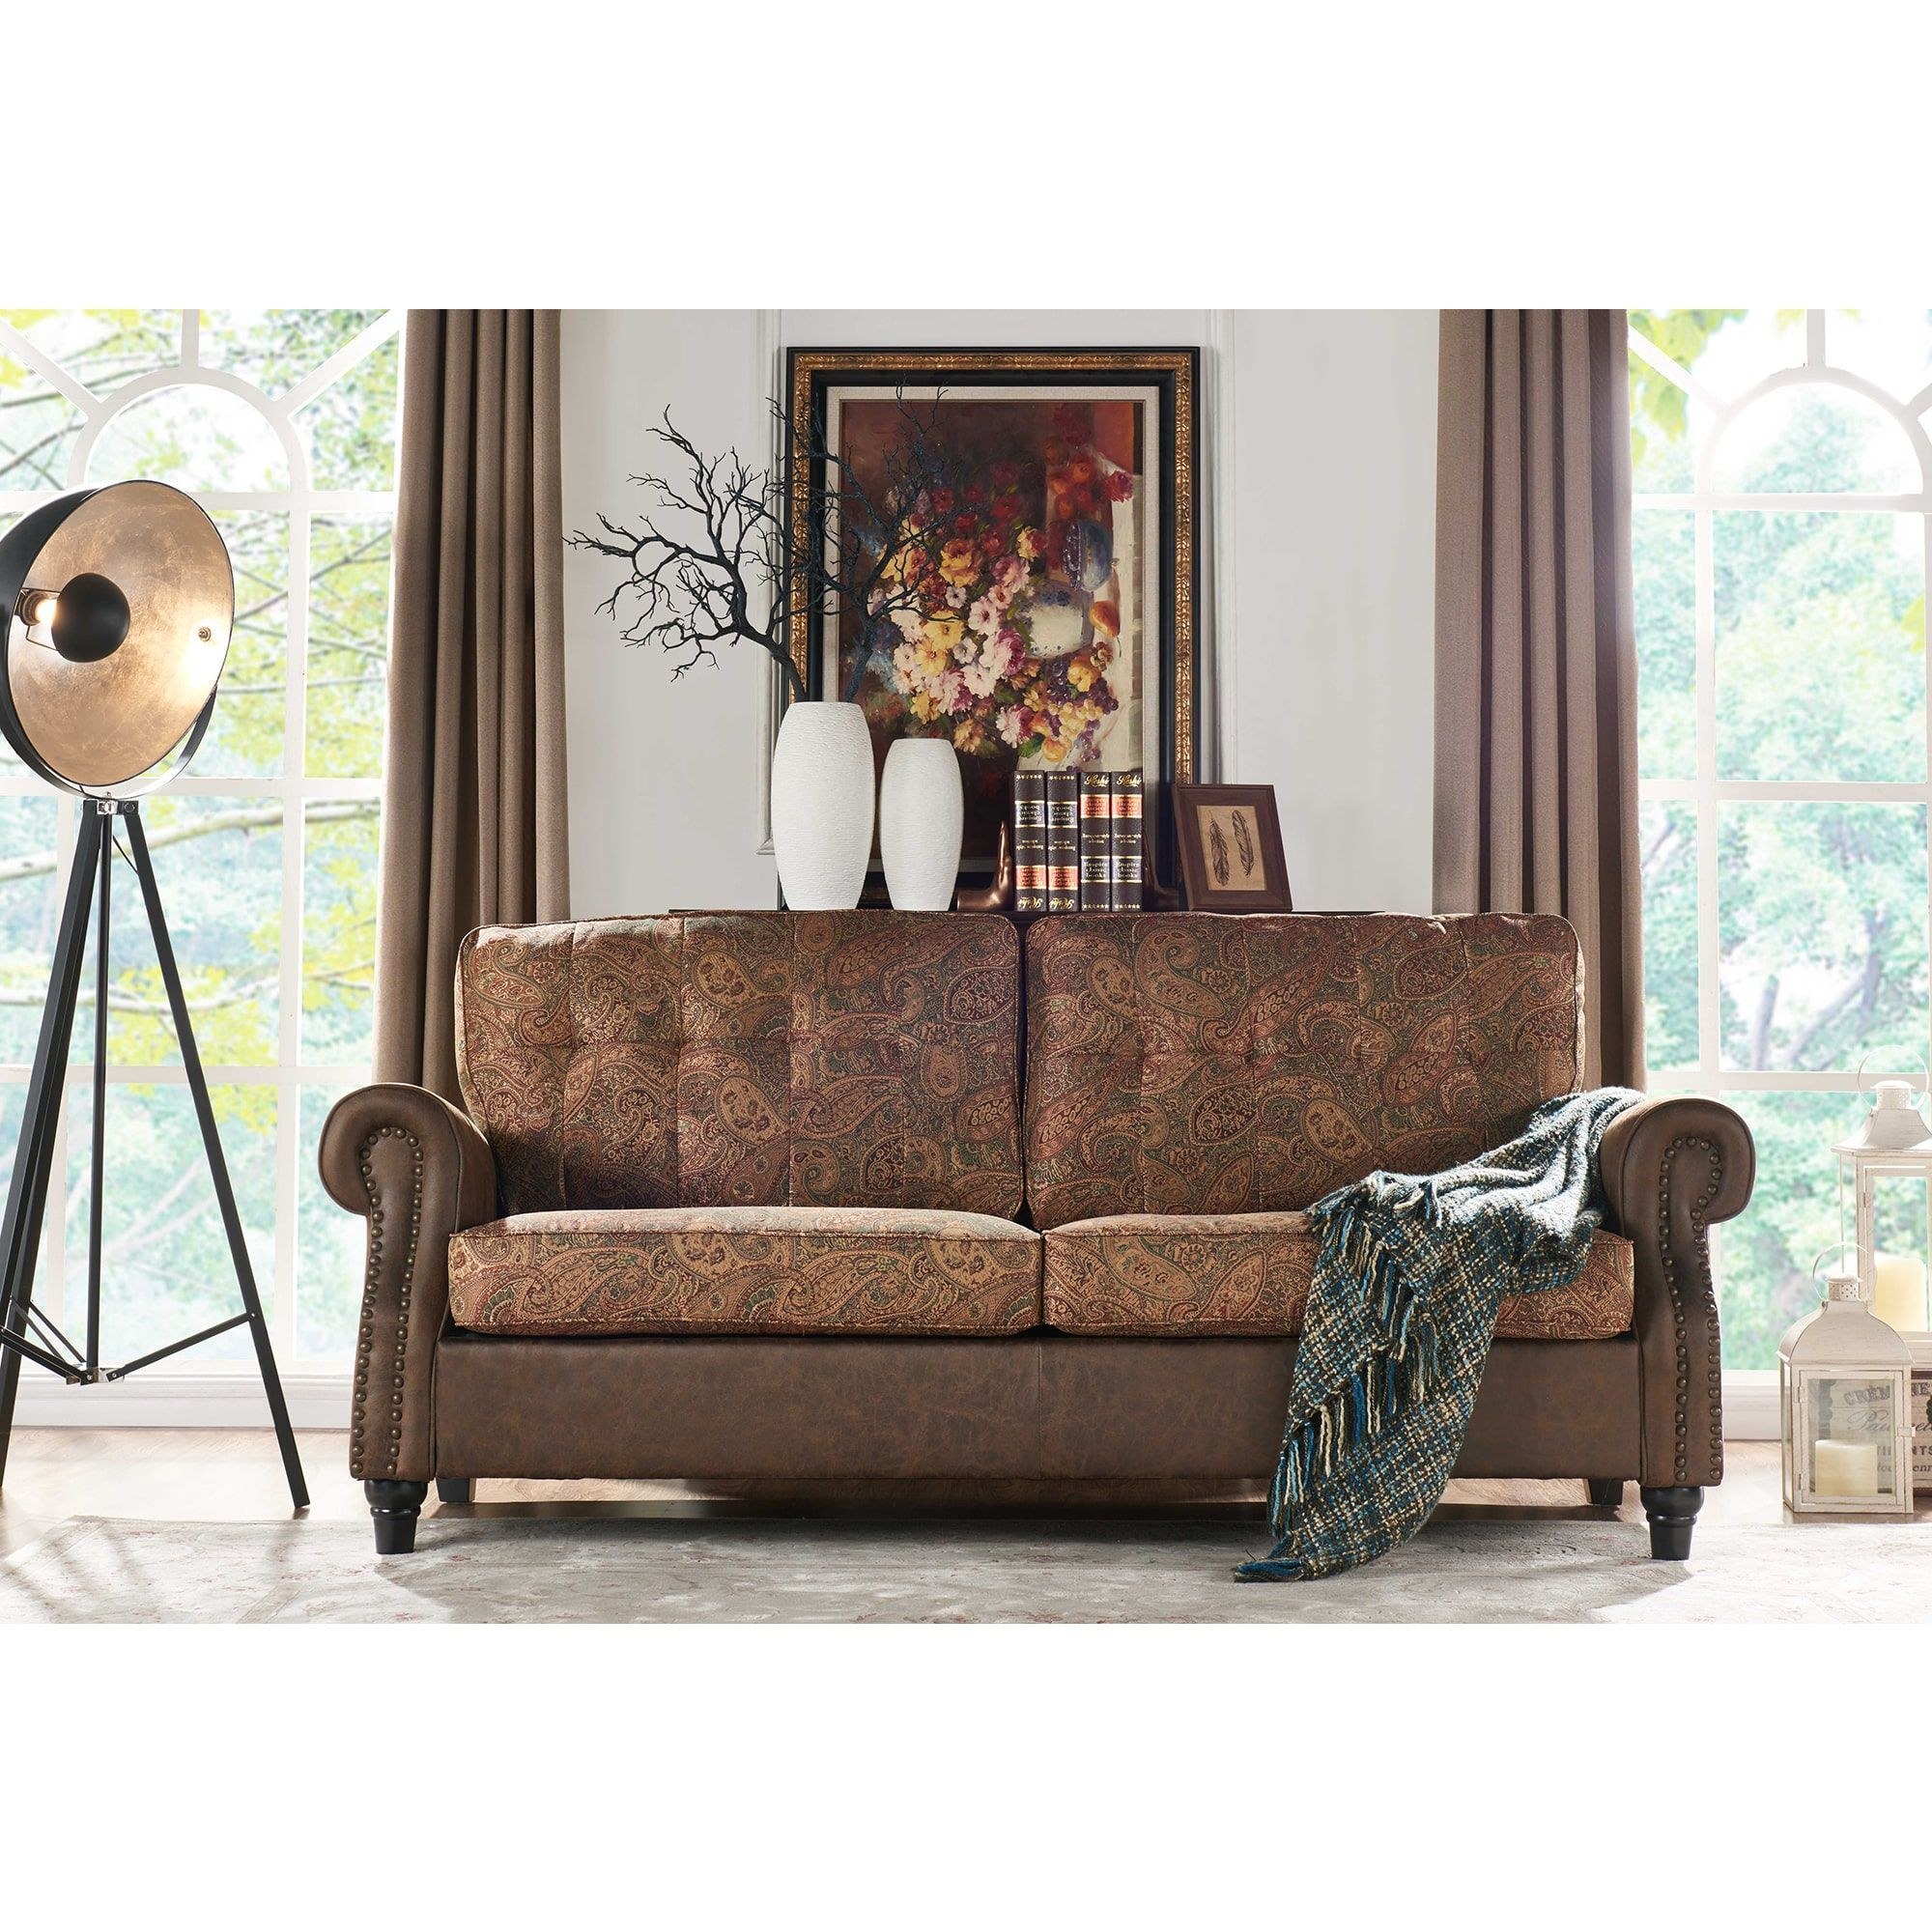 Handy Living Victoria Sofast Sofa In A